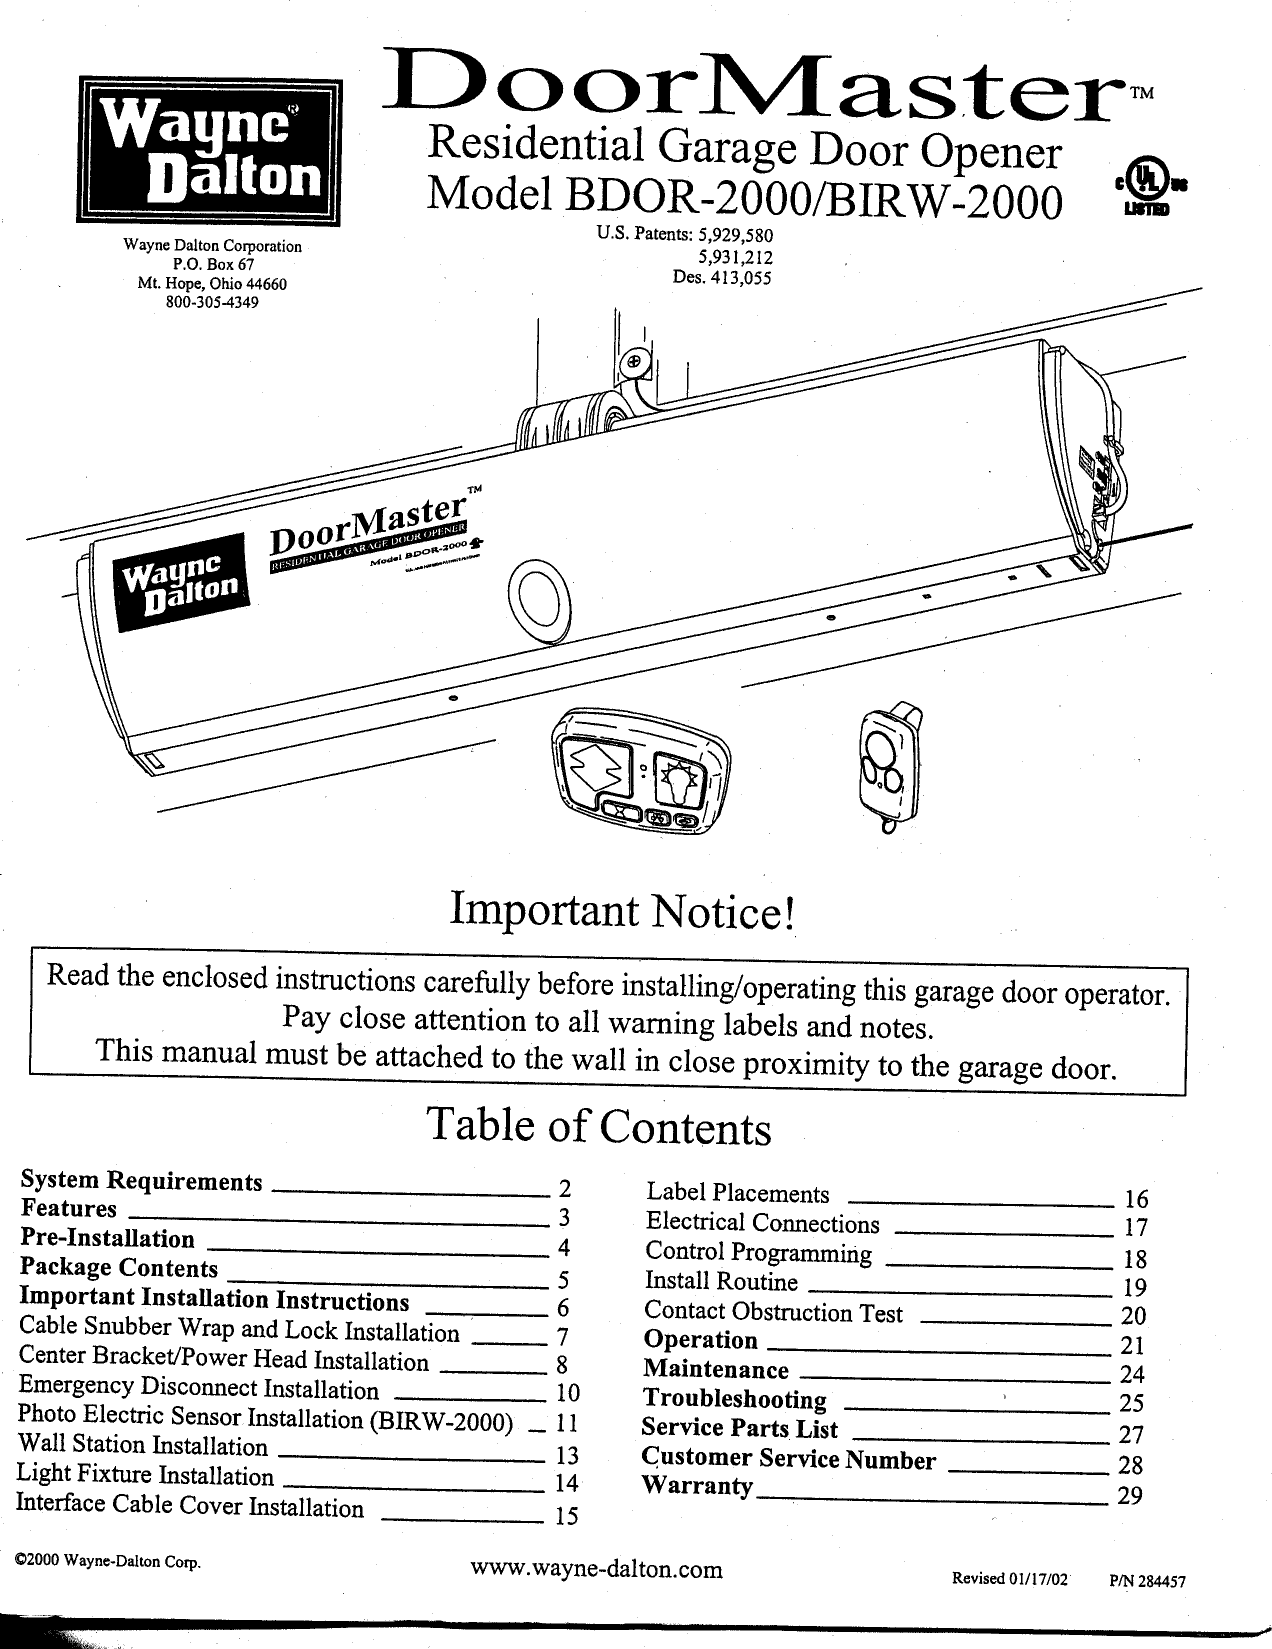 Wayne dalton garage door manual